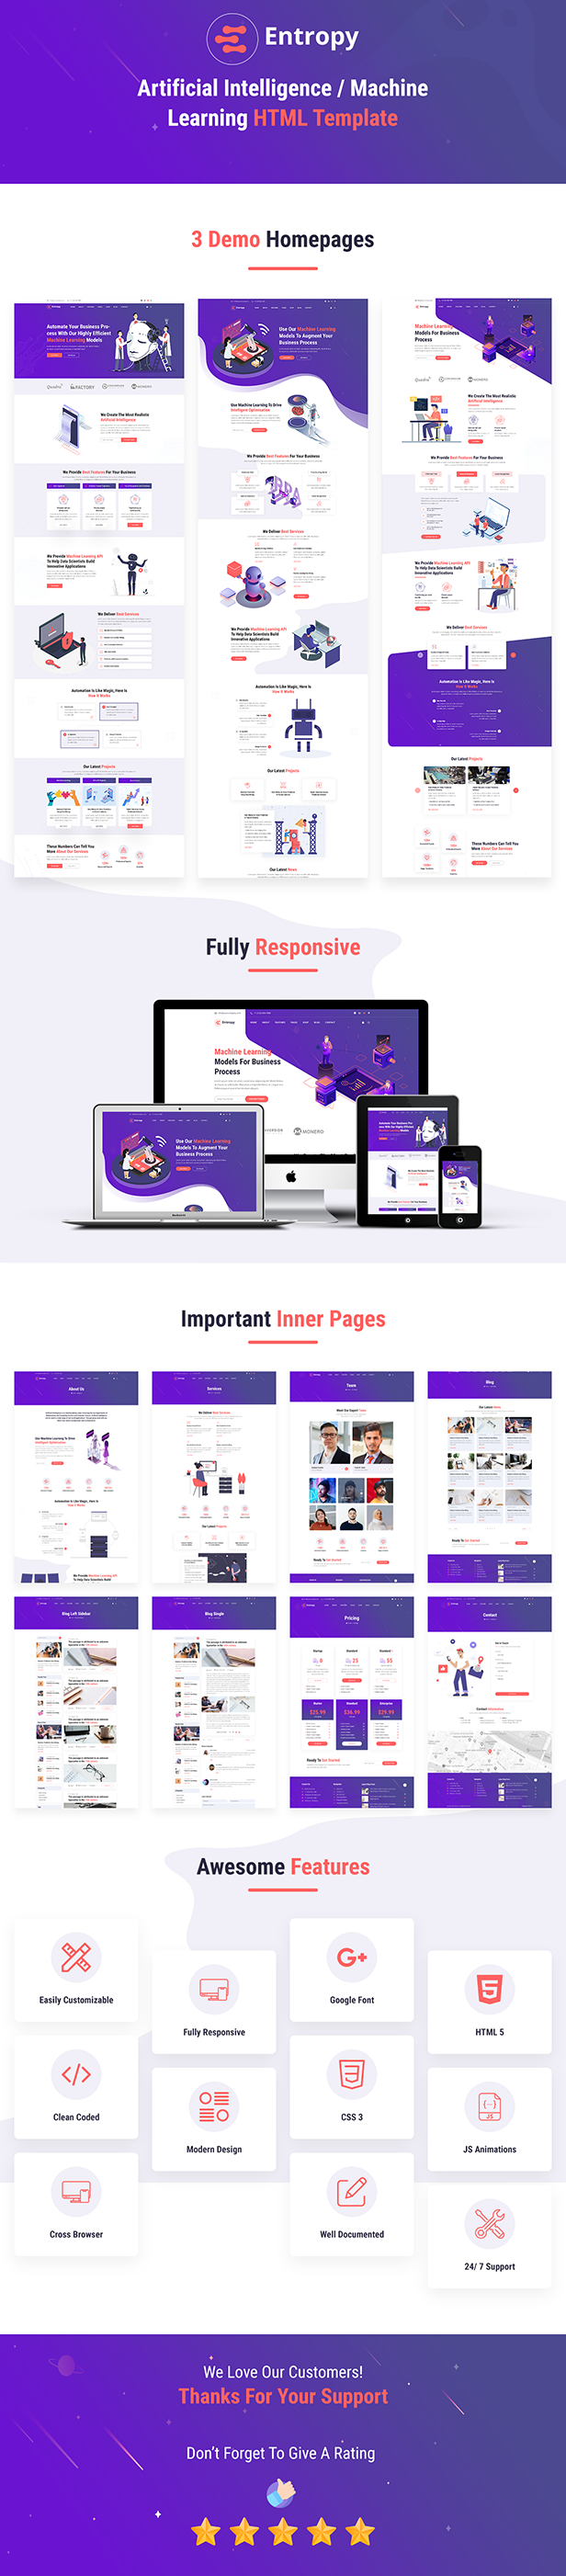 Entropy - Machine Learning & AI Startups HTML Template - 1